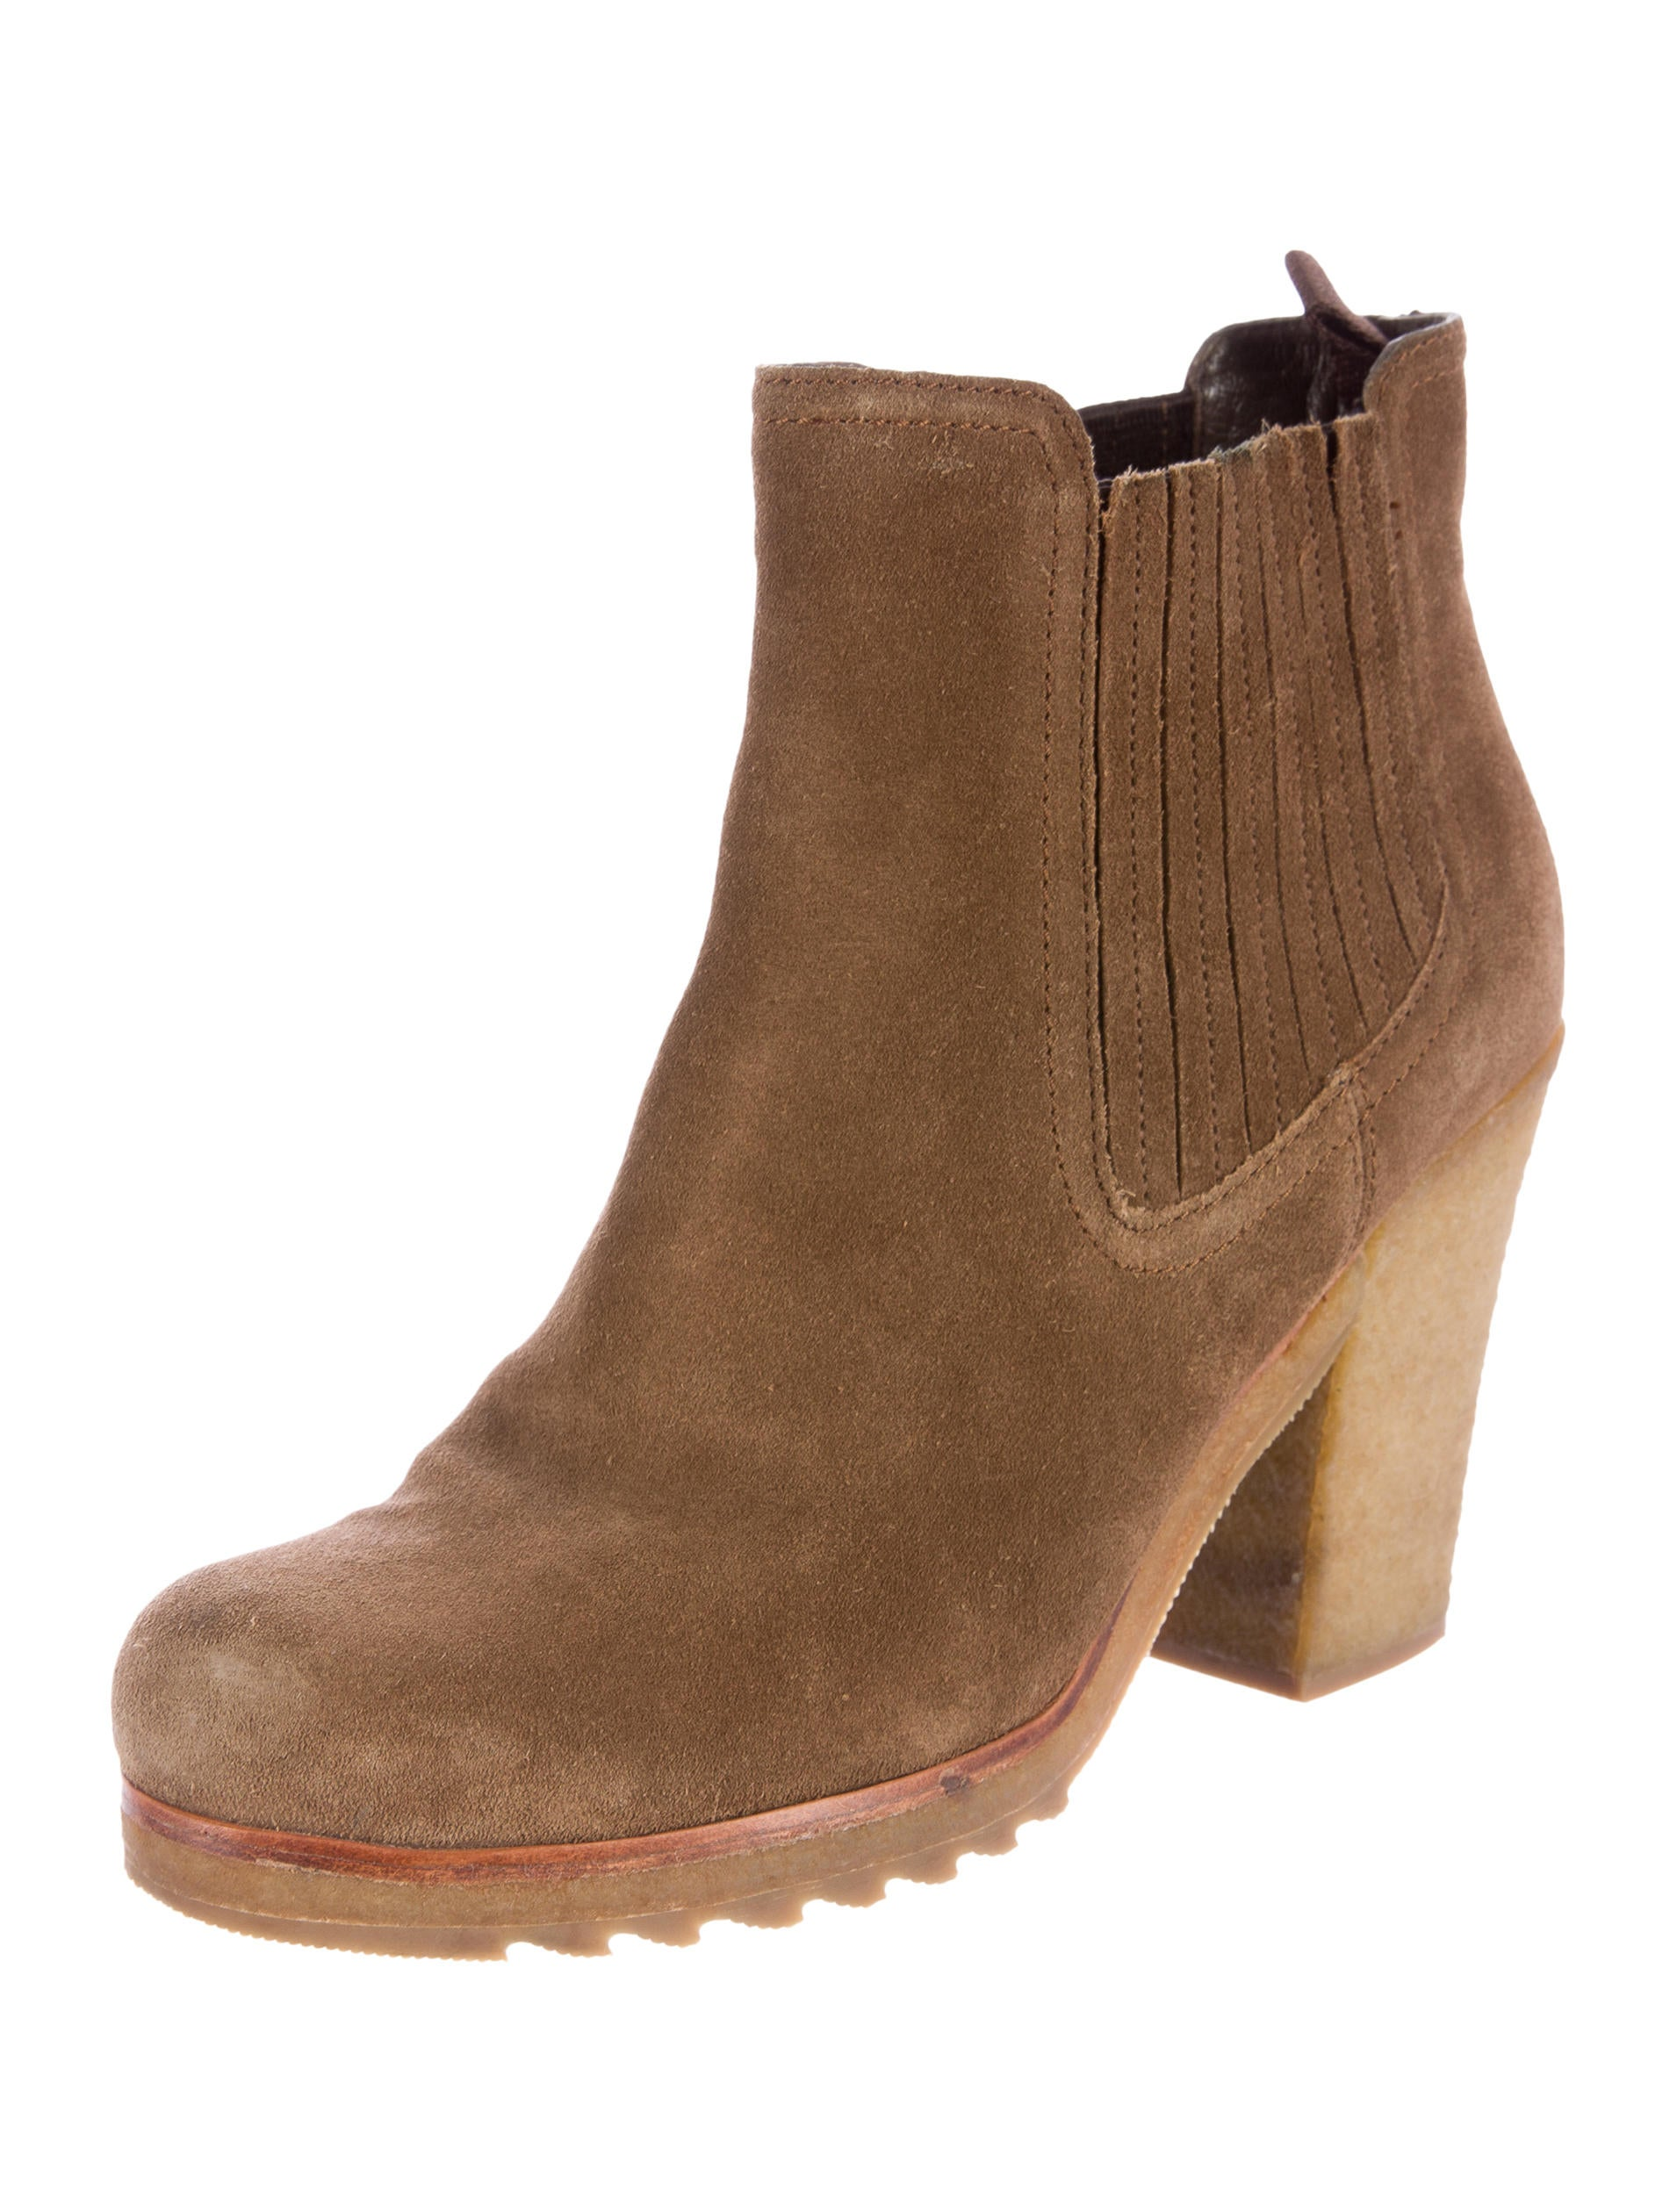 prada sport suede toe ankle boots shoes wpr34785